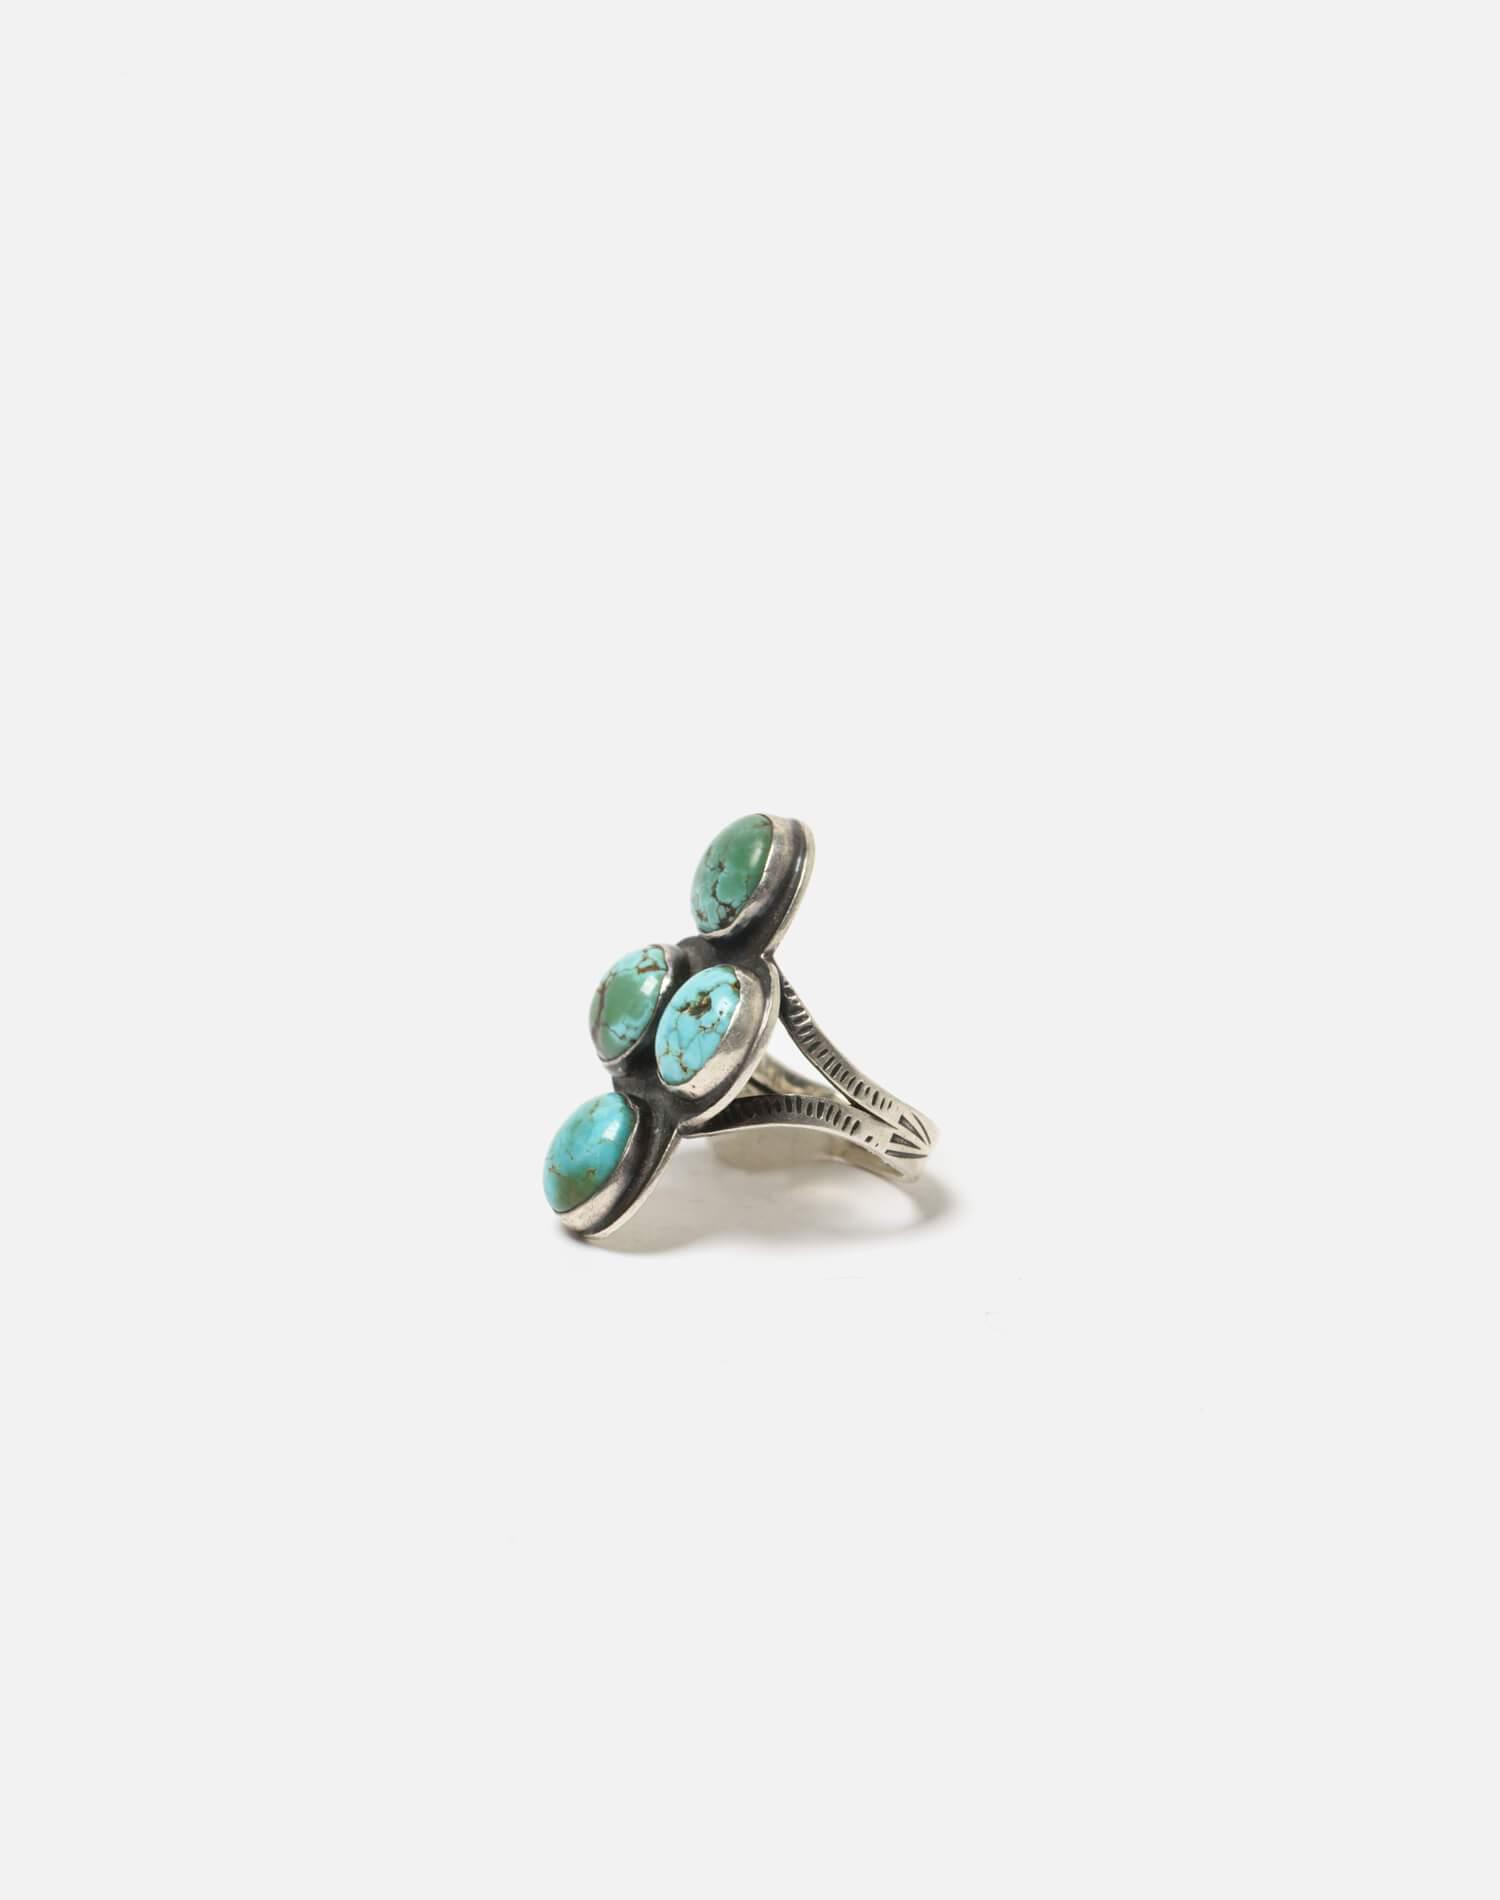 1930s Navajo Spilt Shank Sterling And Turquoise Stone Ring - #94 1